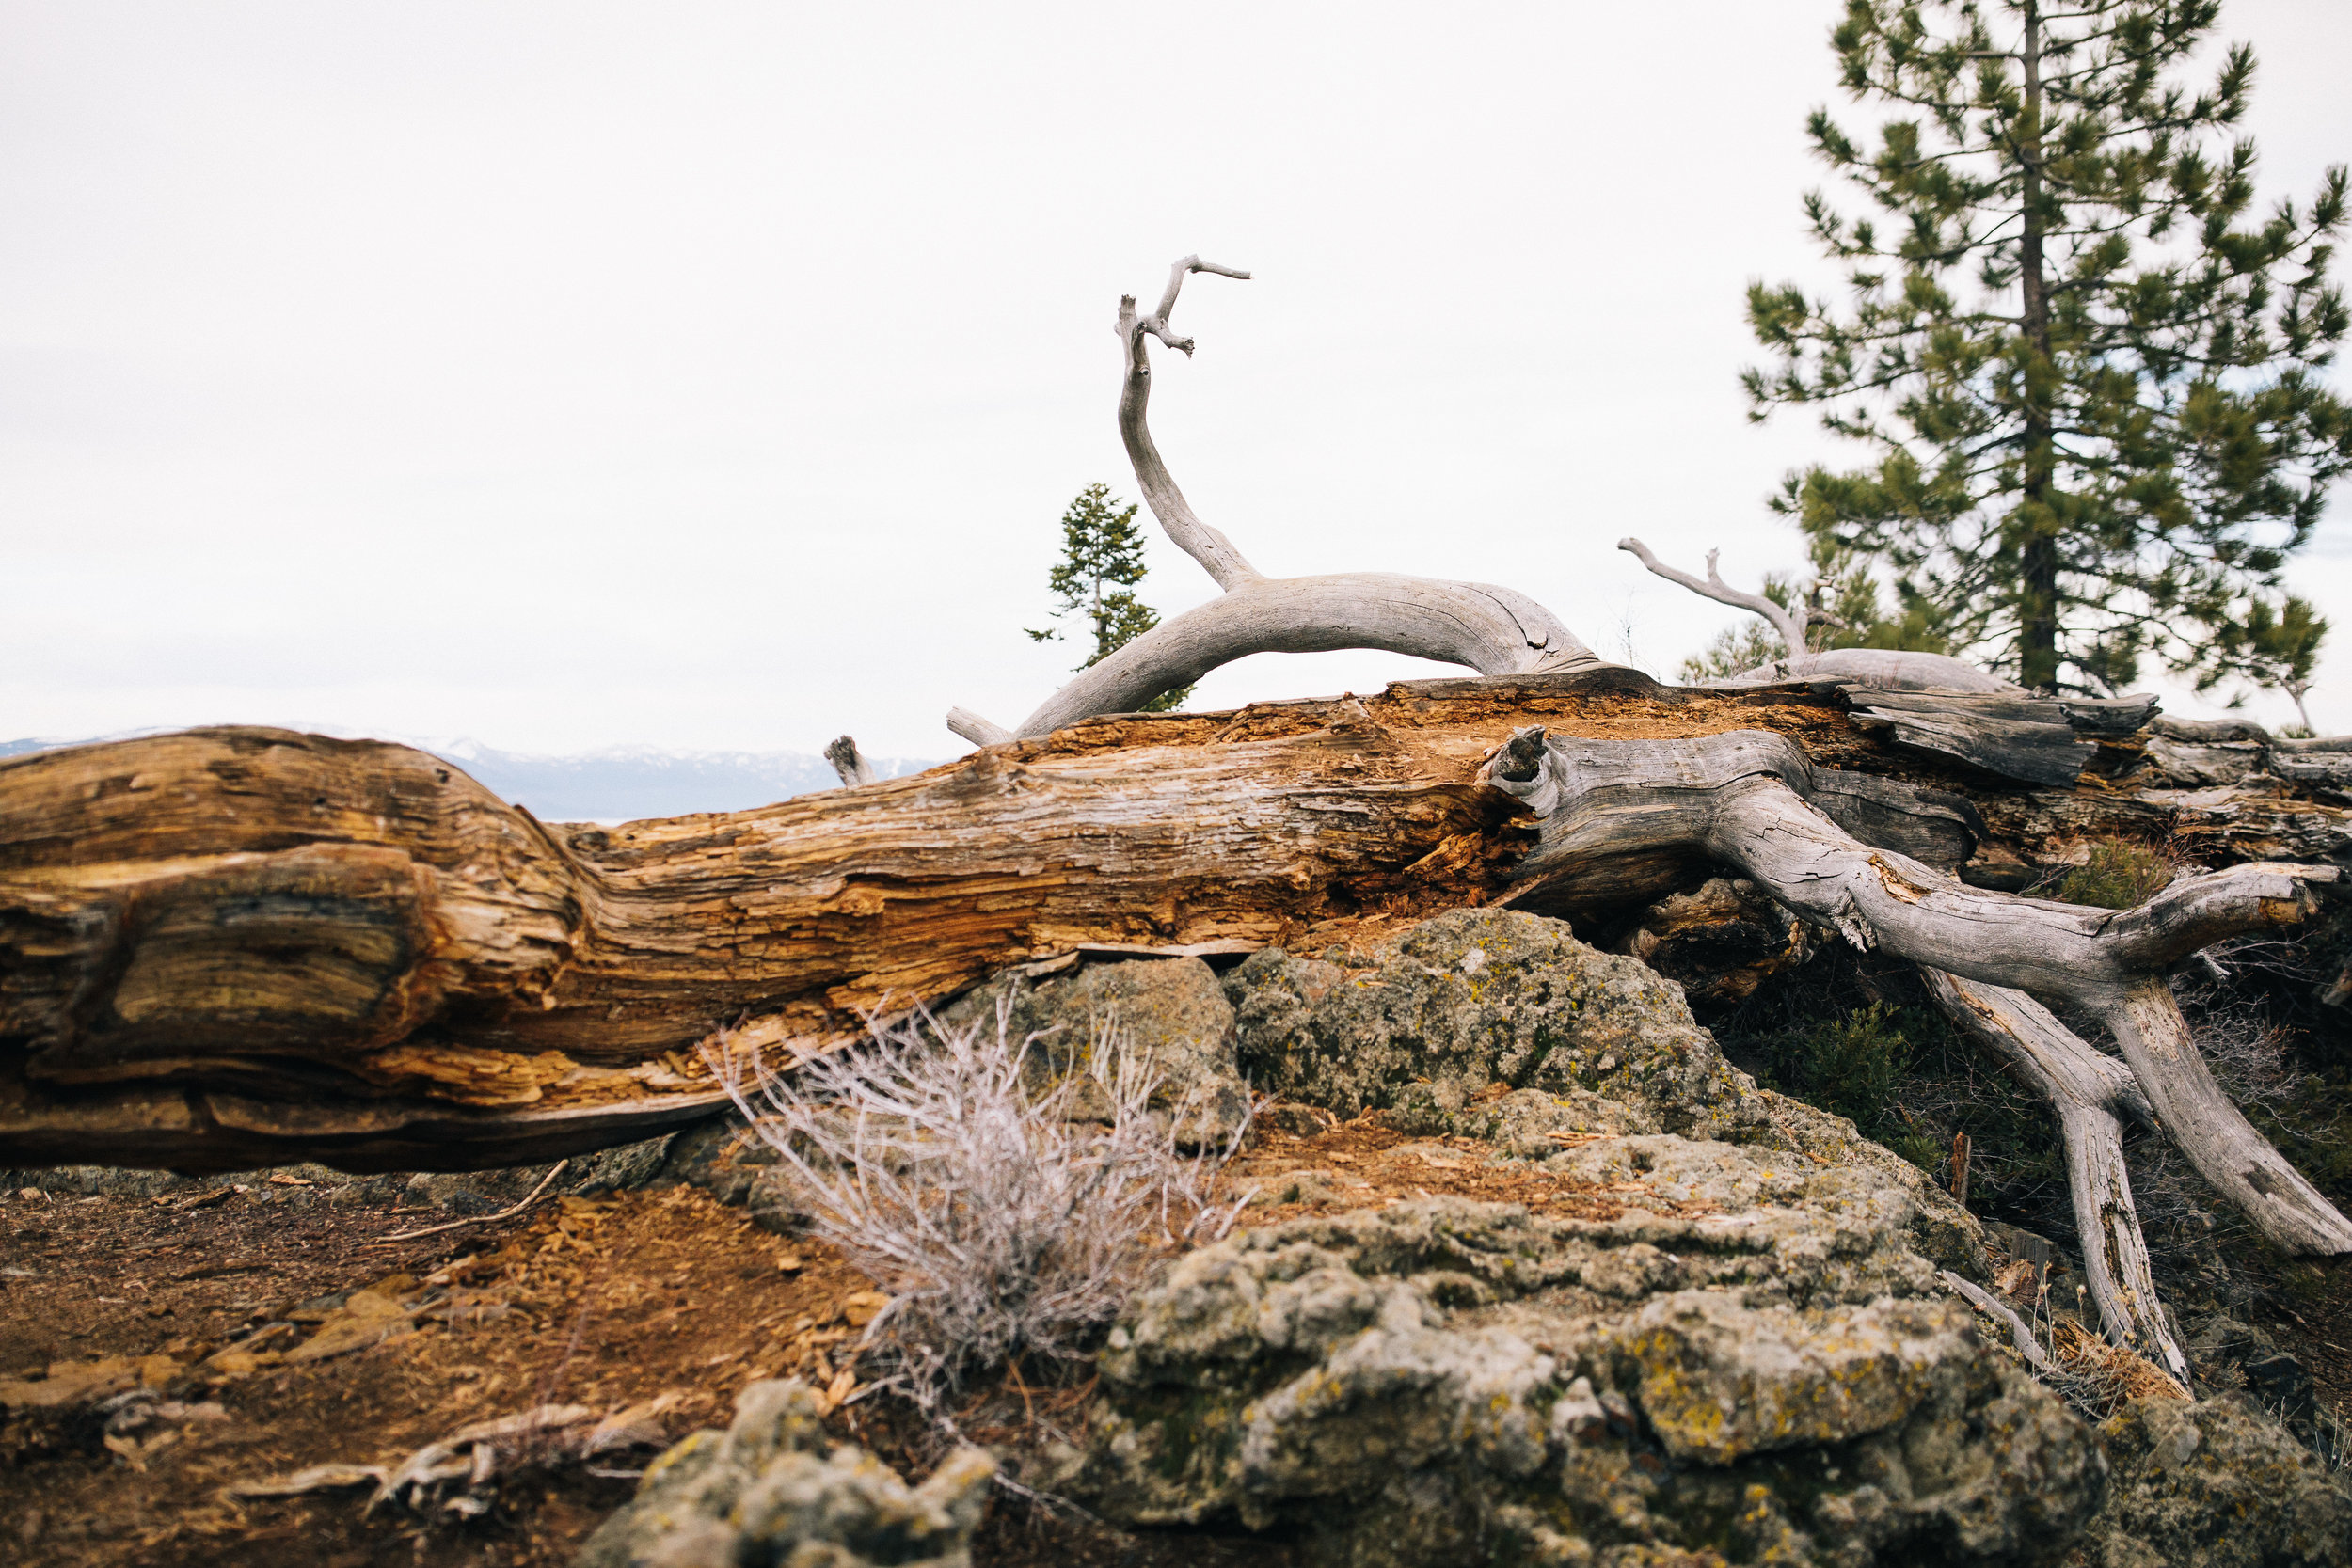 2018_01_01 Tahoe Trip 2018 Edited Full Resolution 0049.jpg